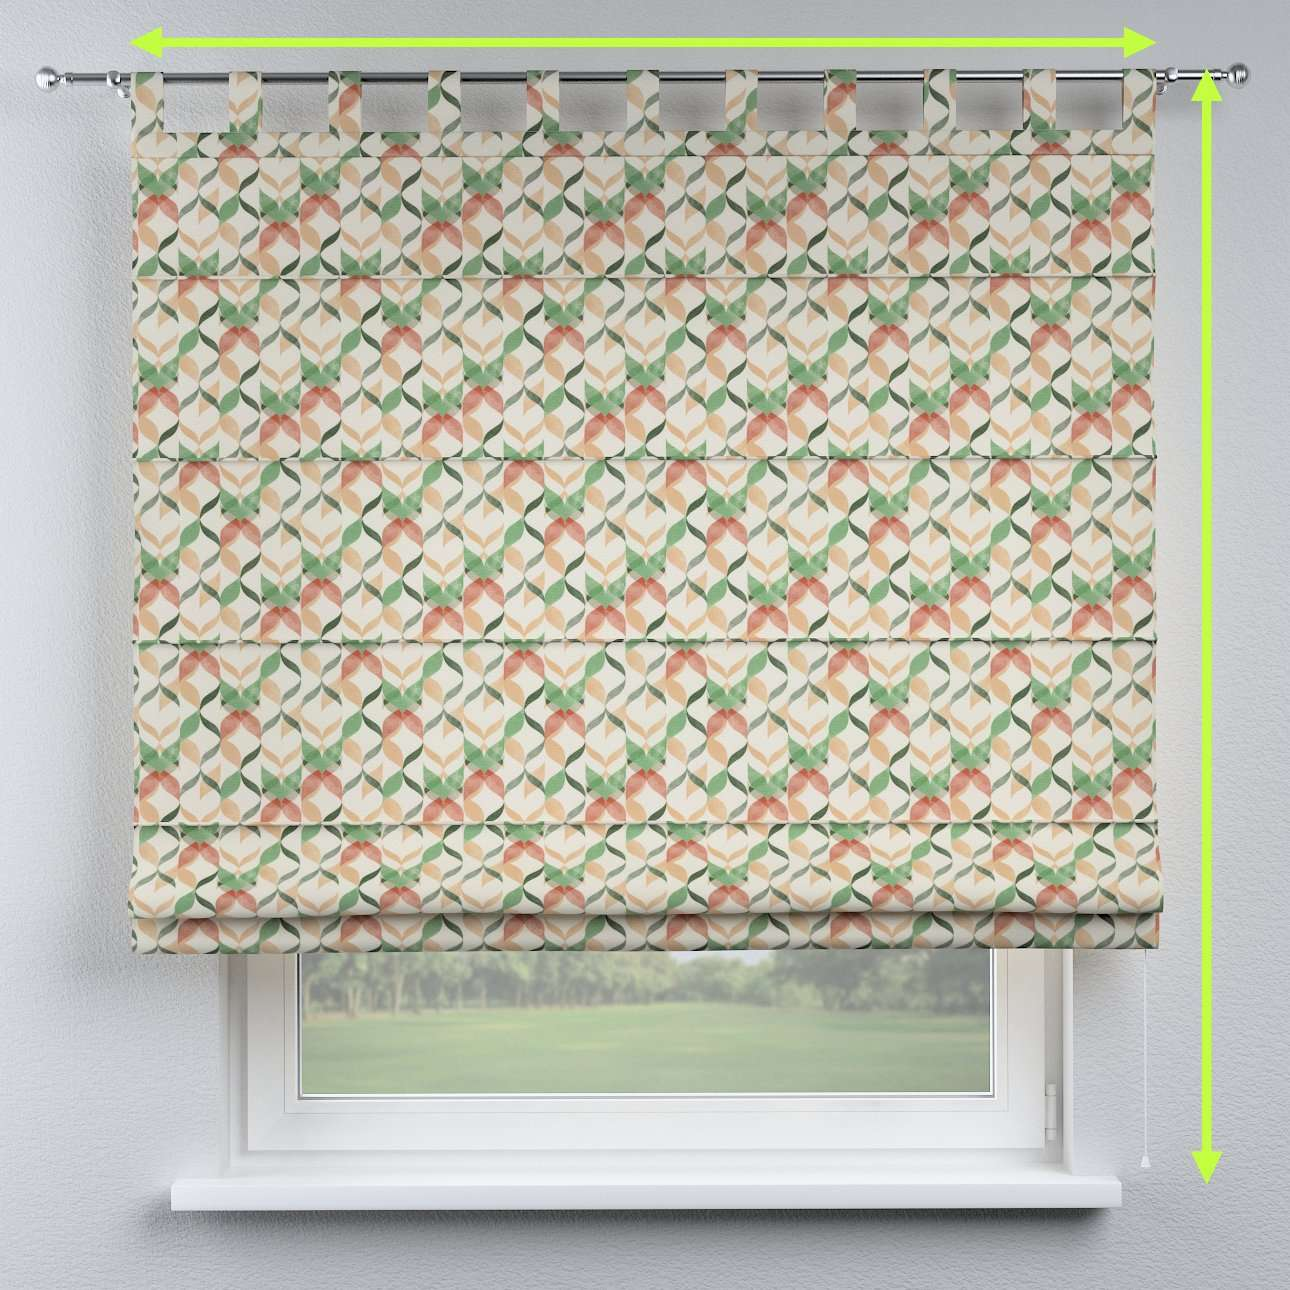 Verona tab top roman blind in collection Urban Jungle, fabric: 141-64